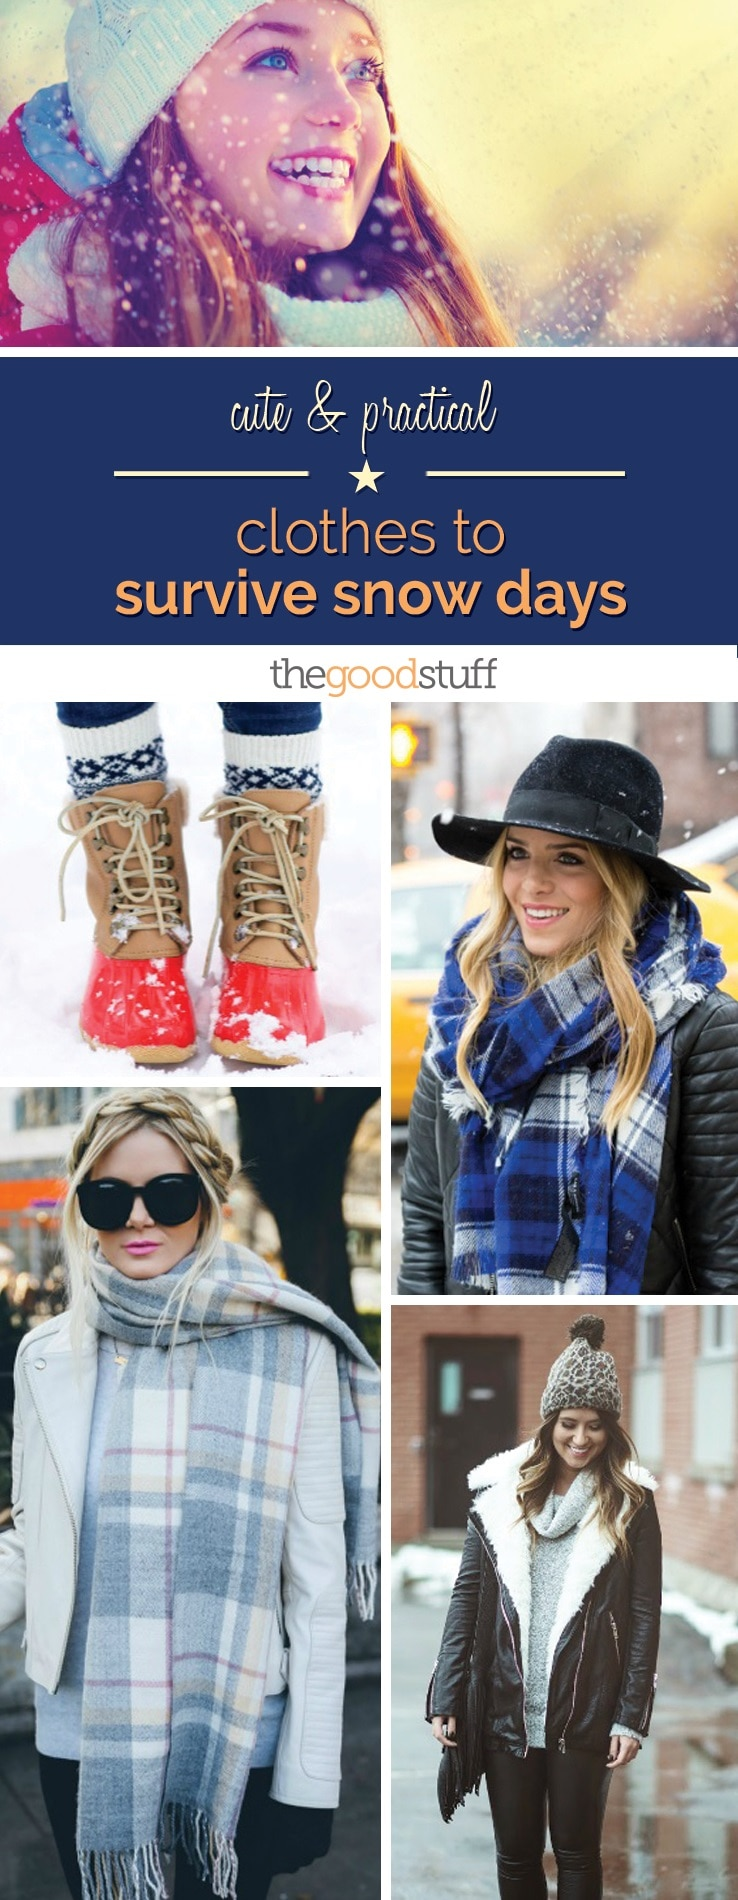 style-survive-snow-days